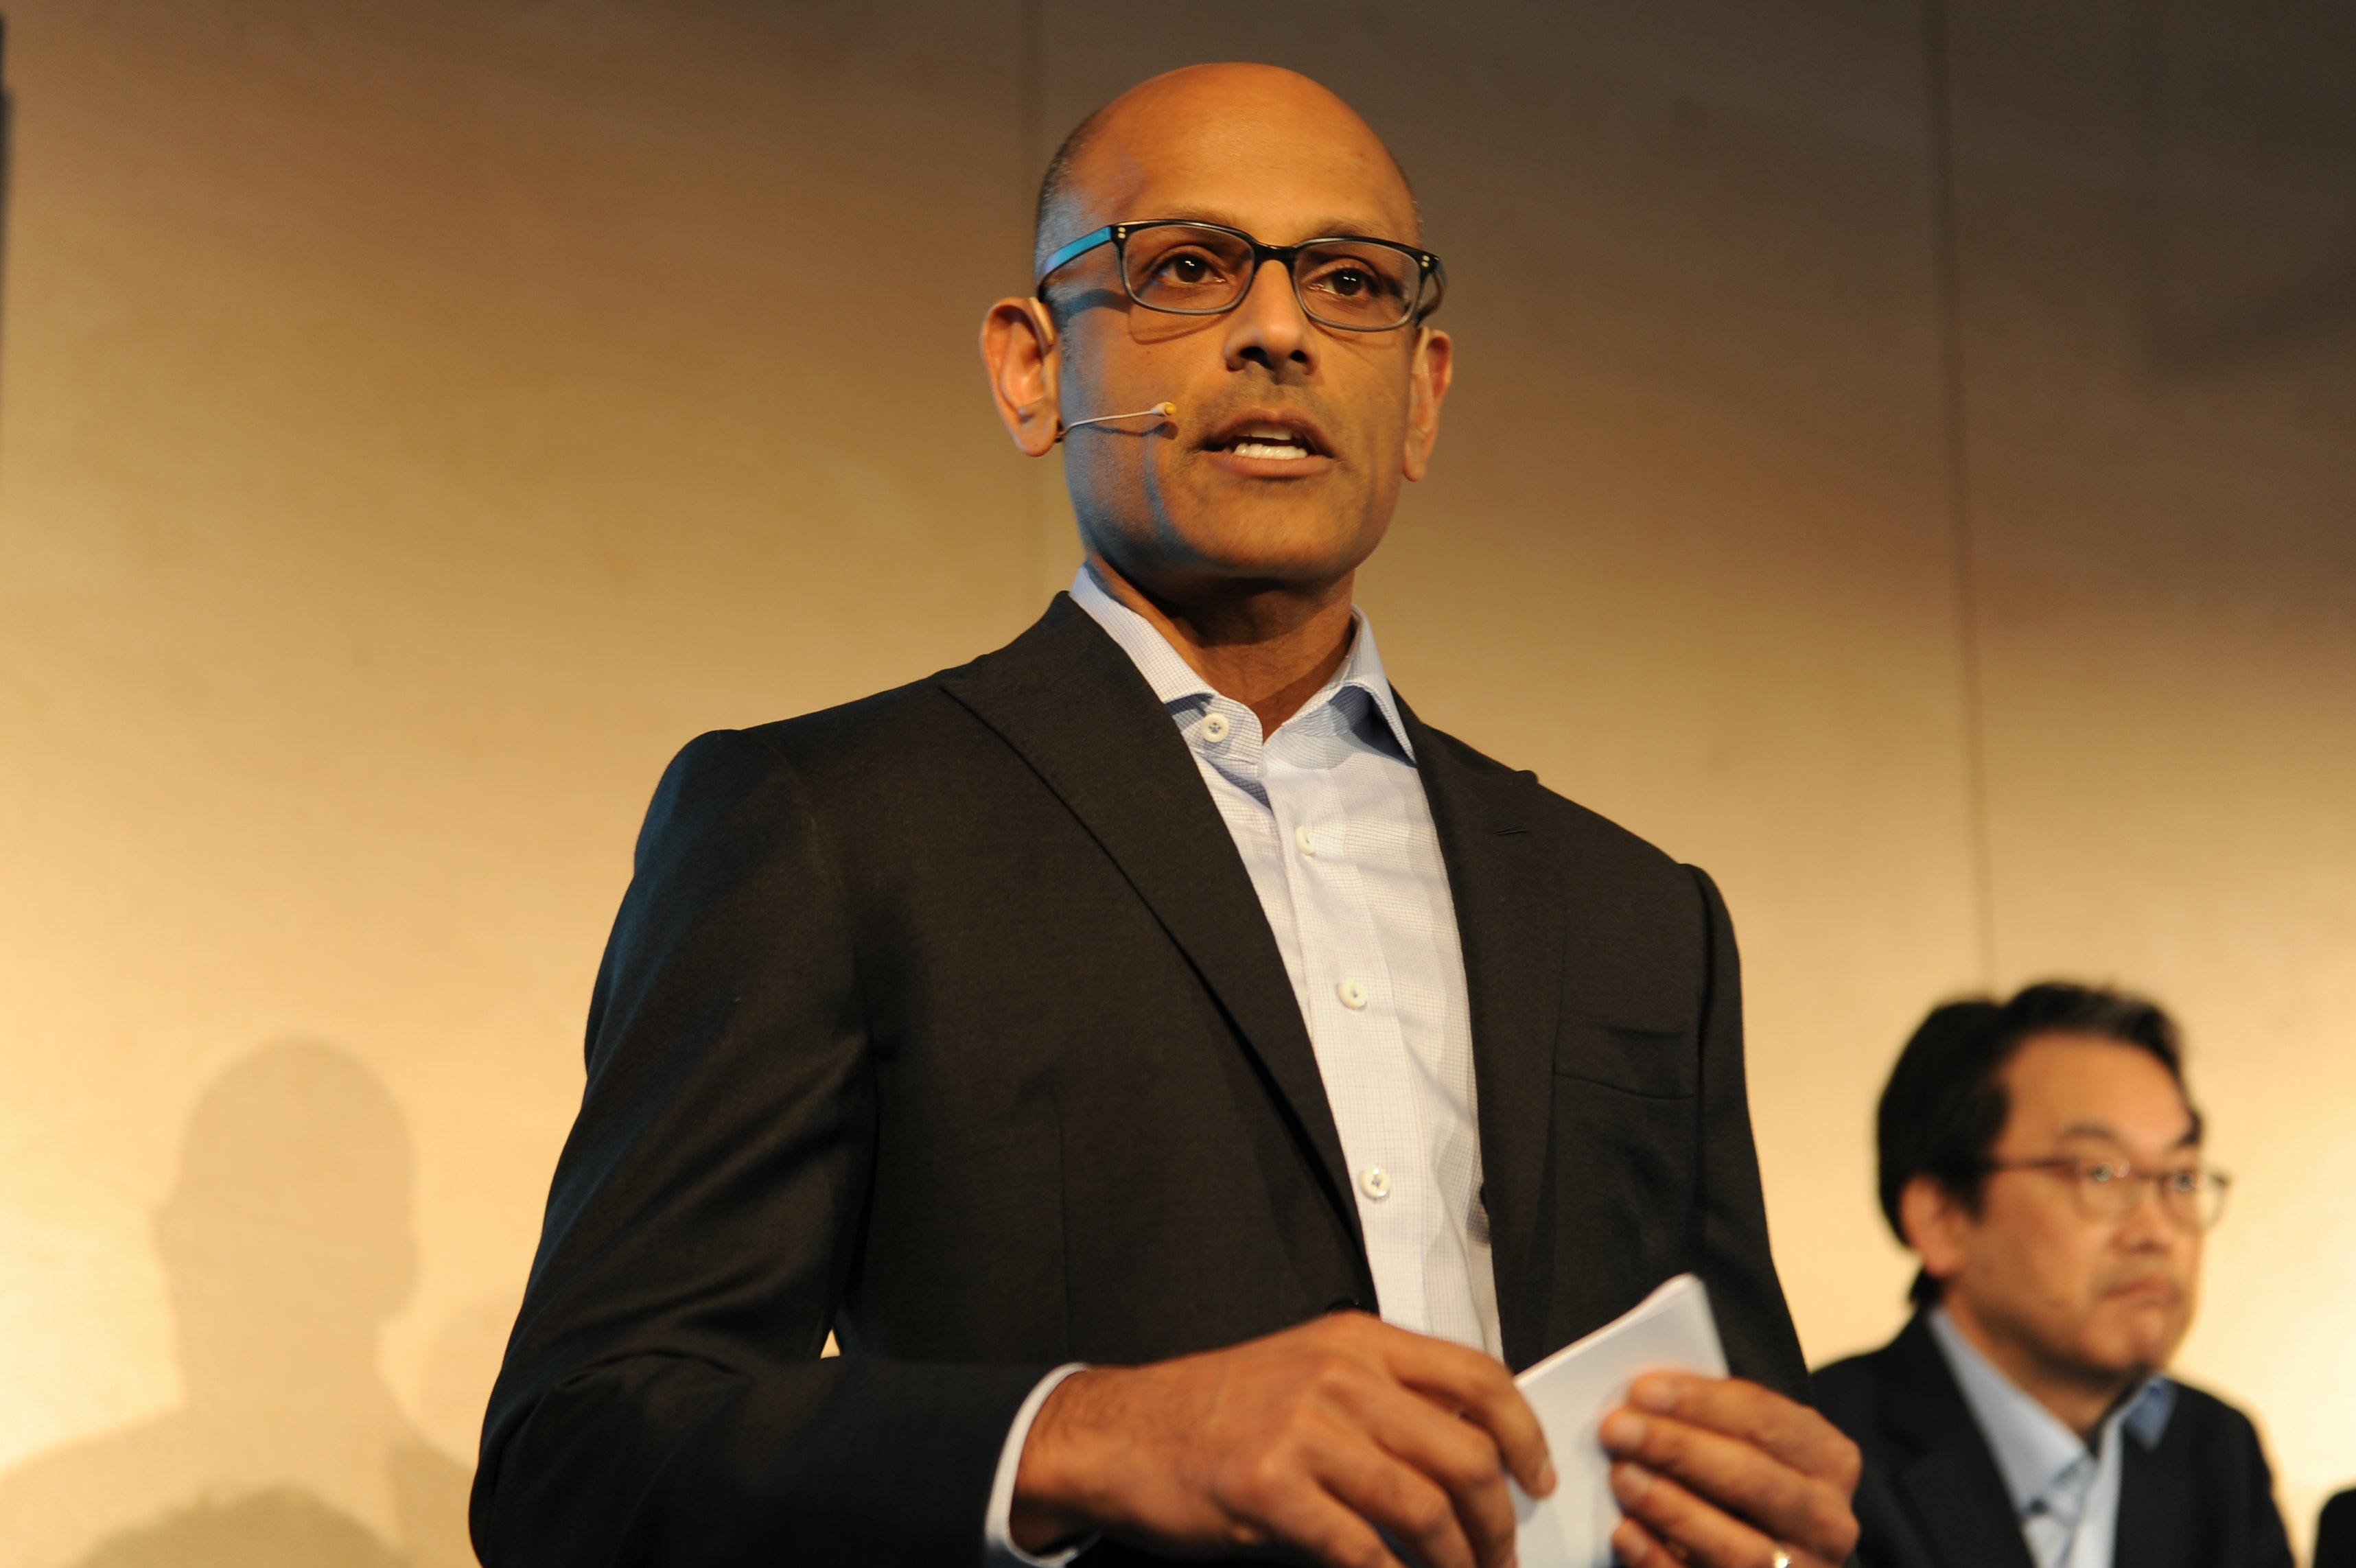 Facebook's leading engineer executive Jay Parikh is leaving the company